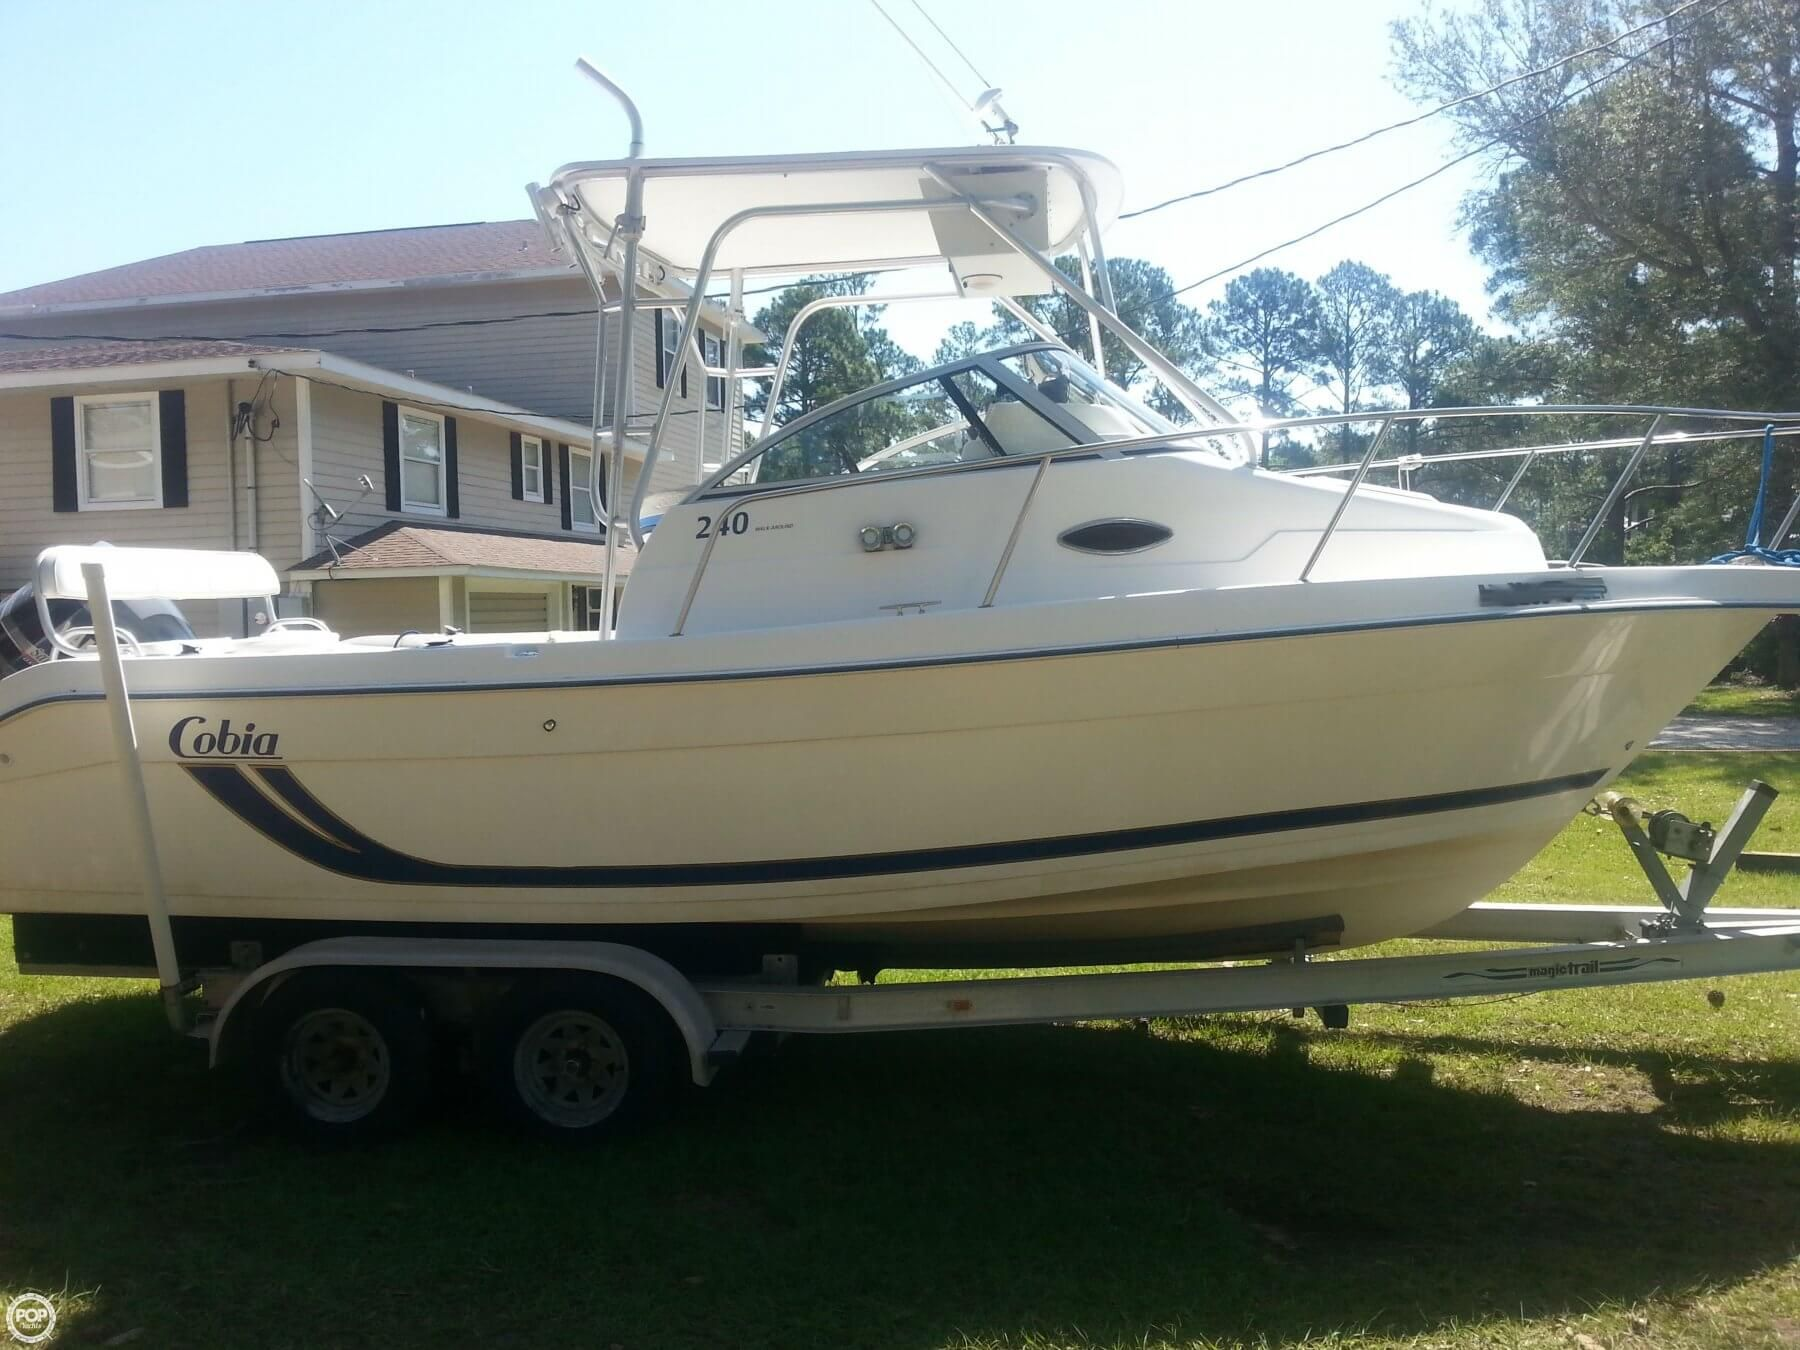 240 Walkaround Boats For Sale Hydraulic Steering Boat